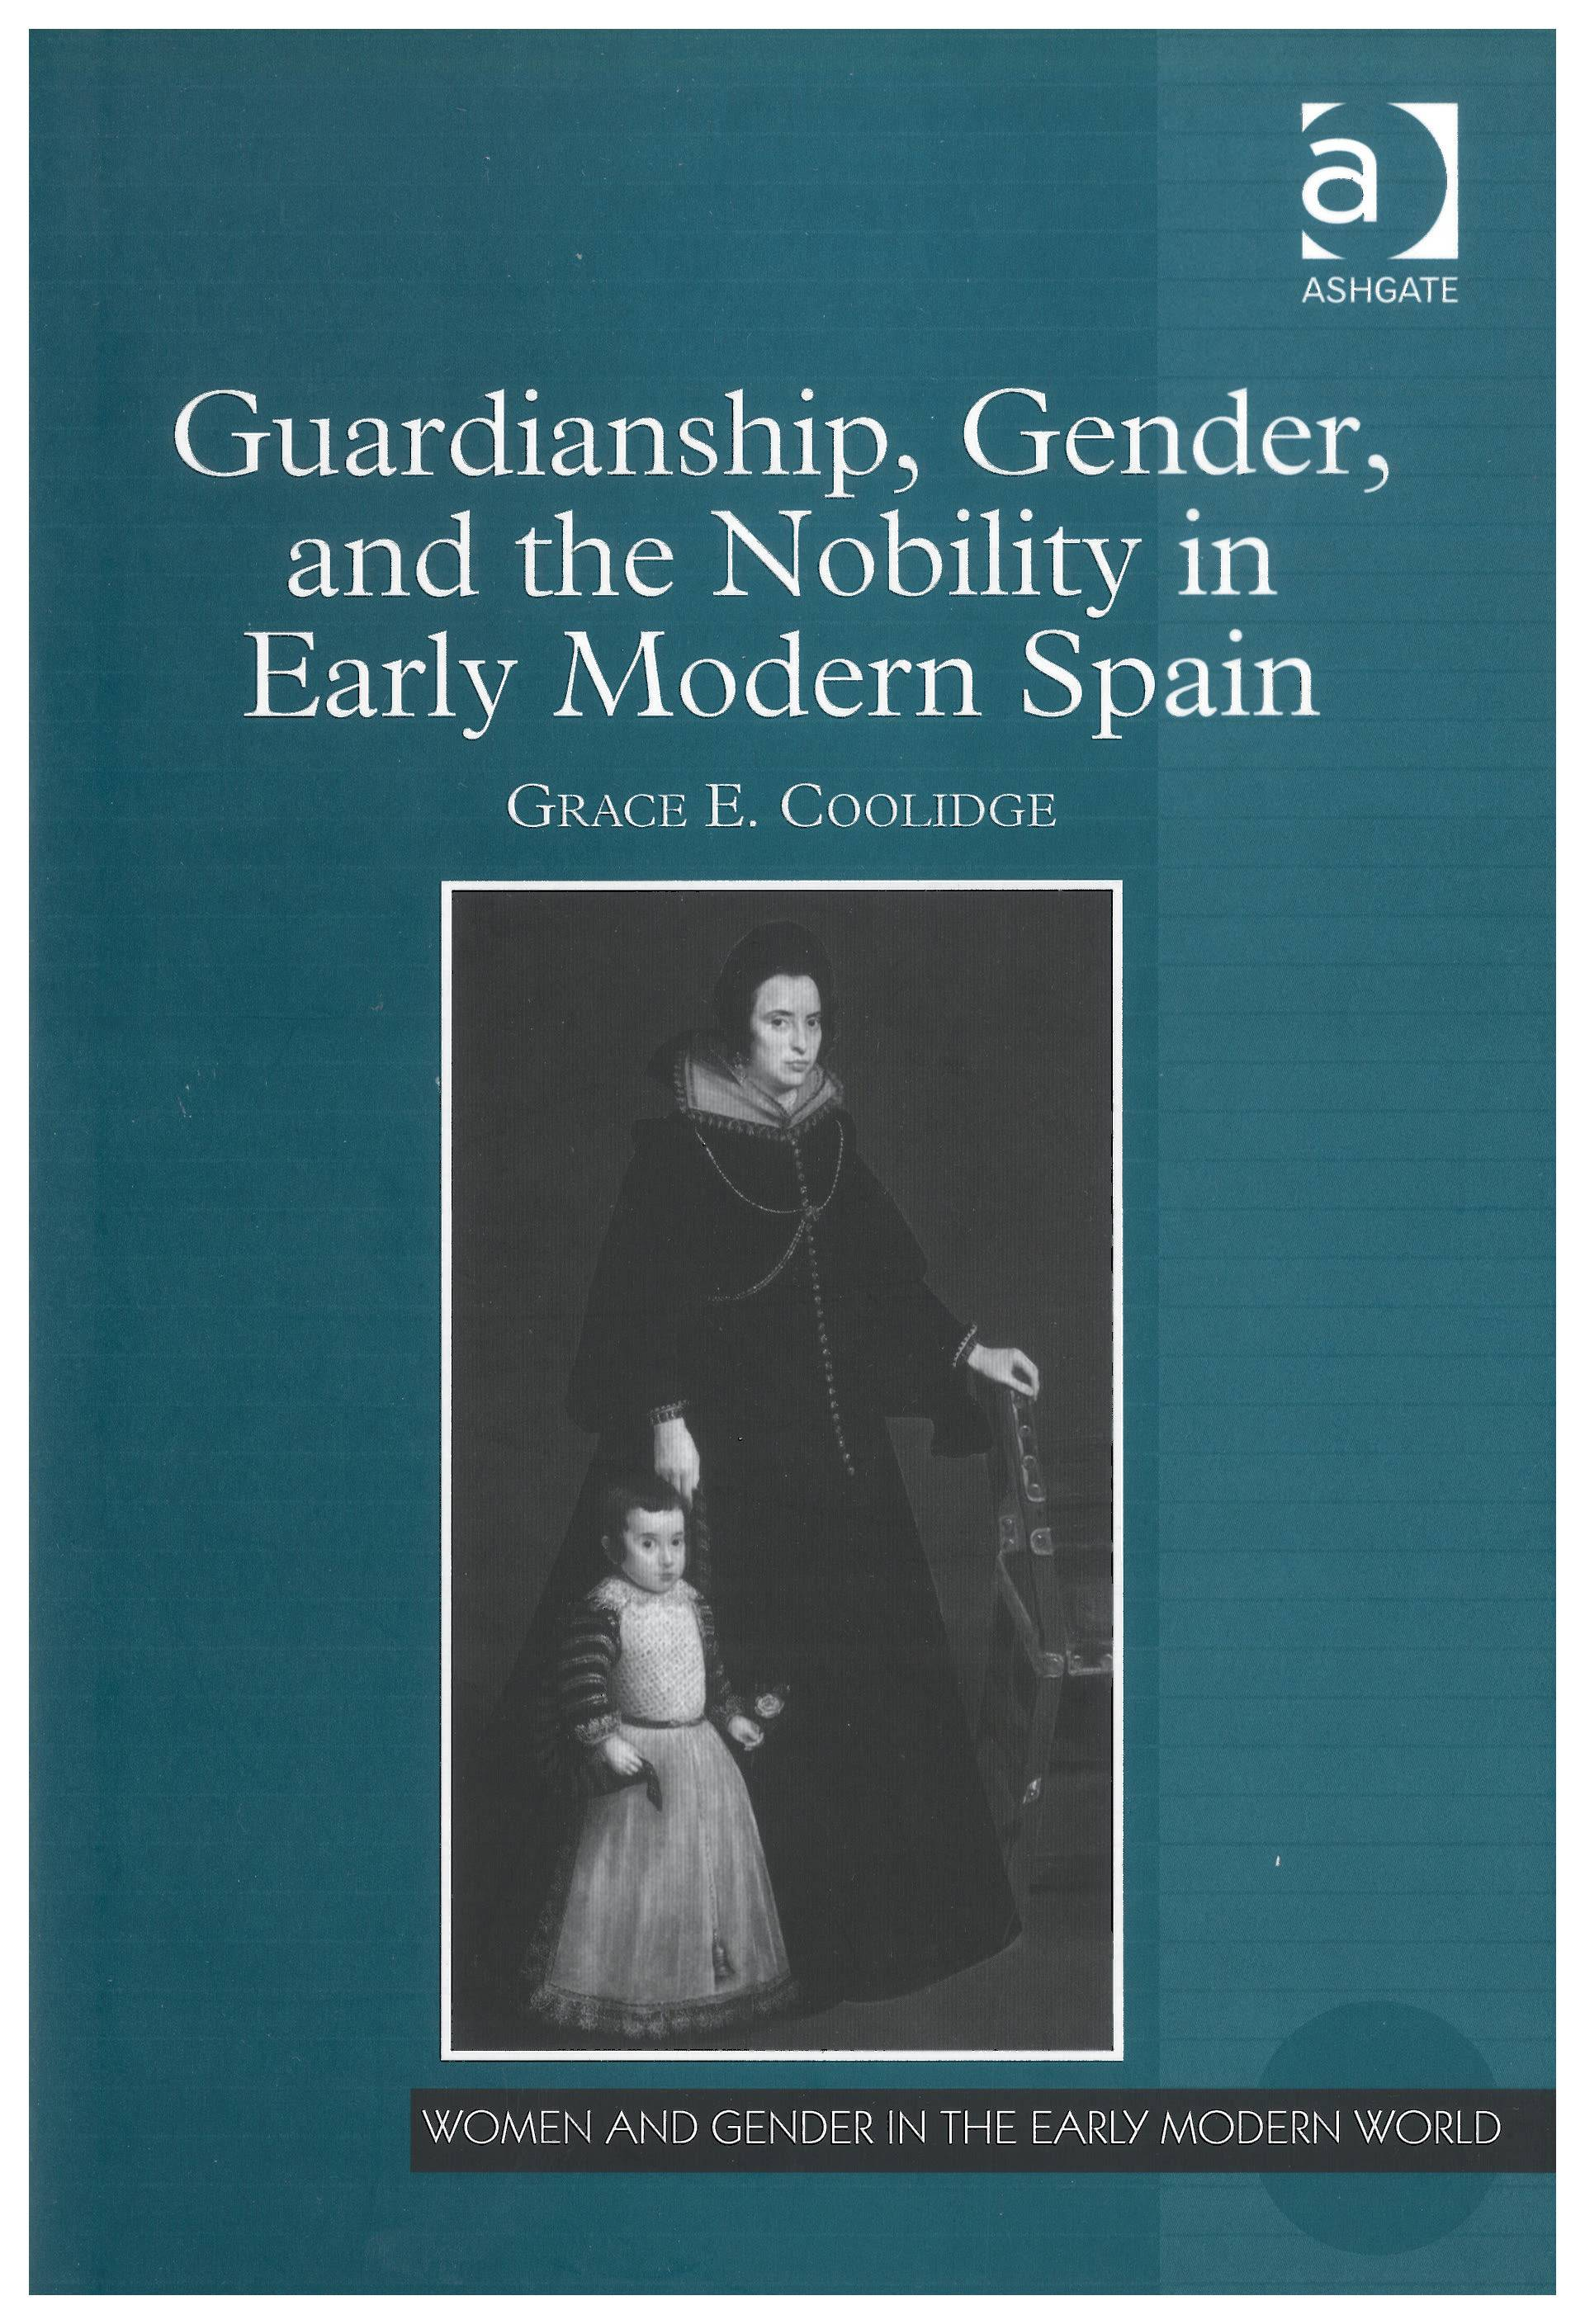 Guardianship, Gender, and Nobility in Early Modern Spain